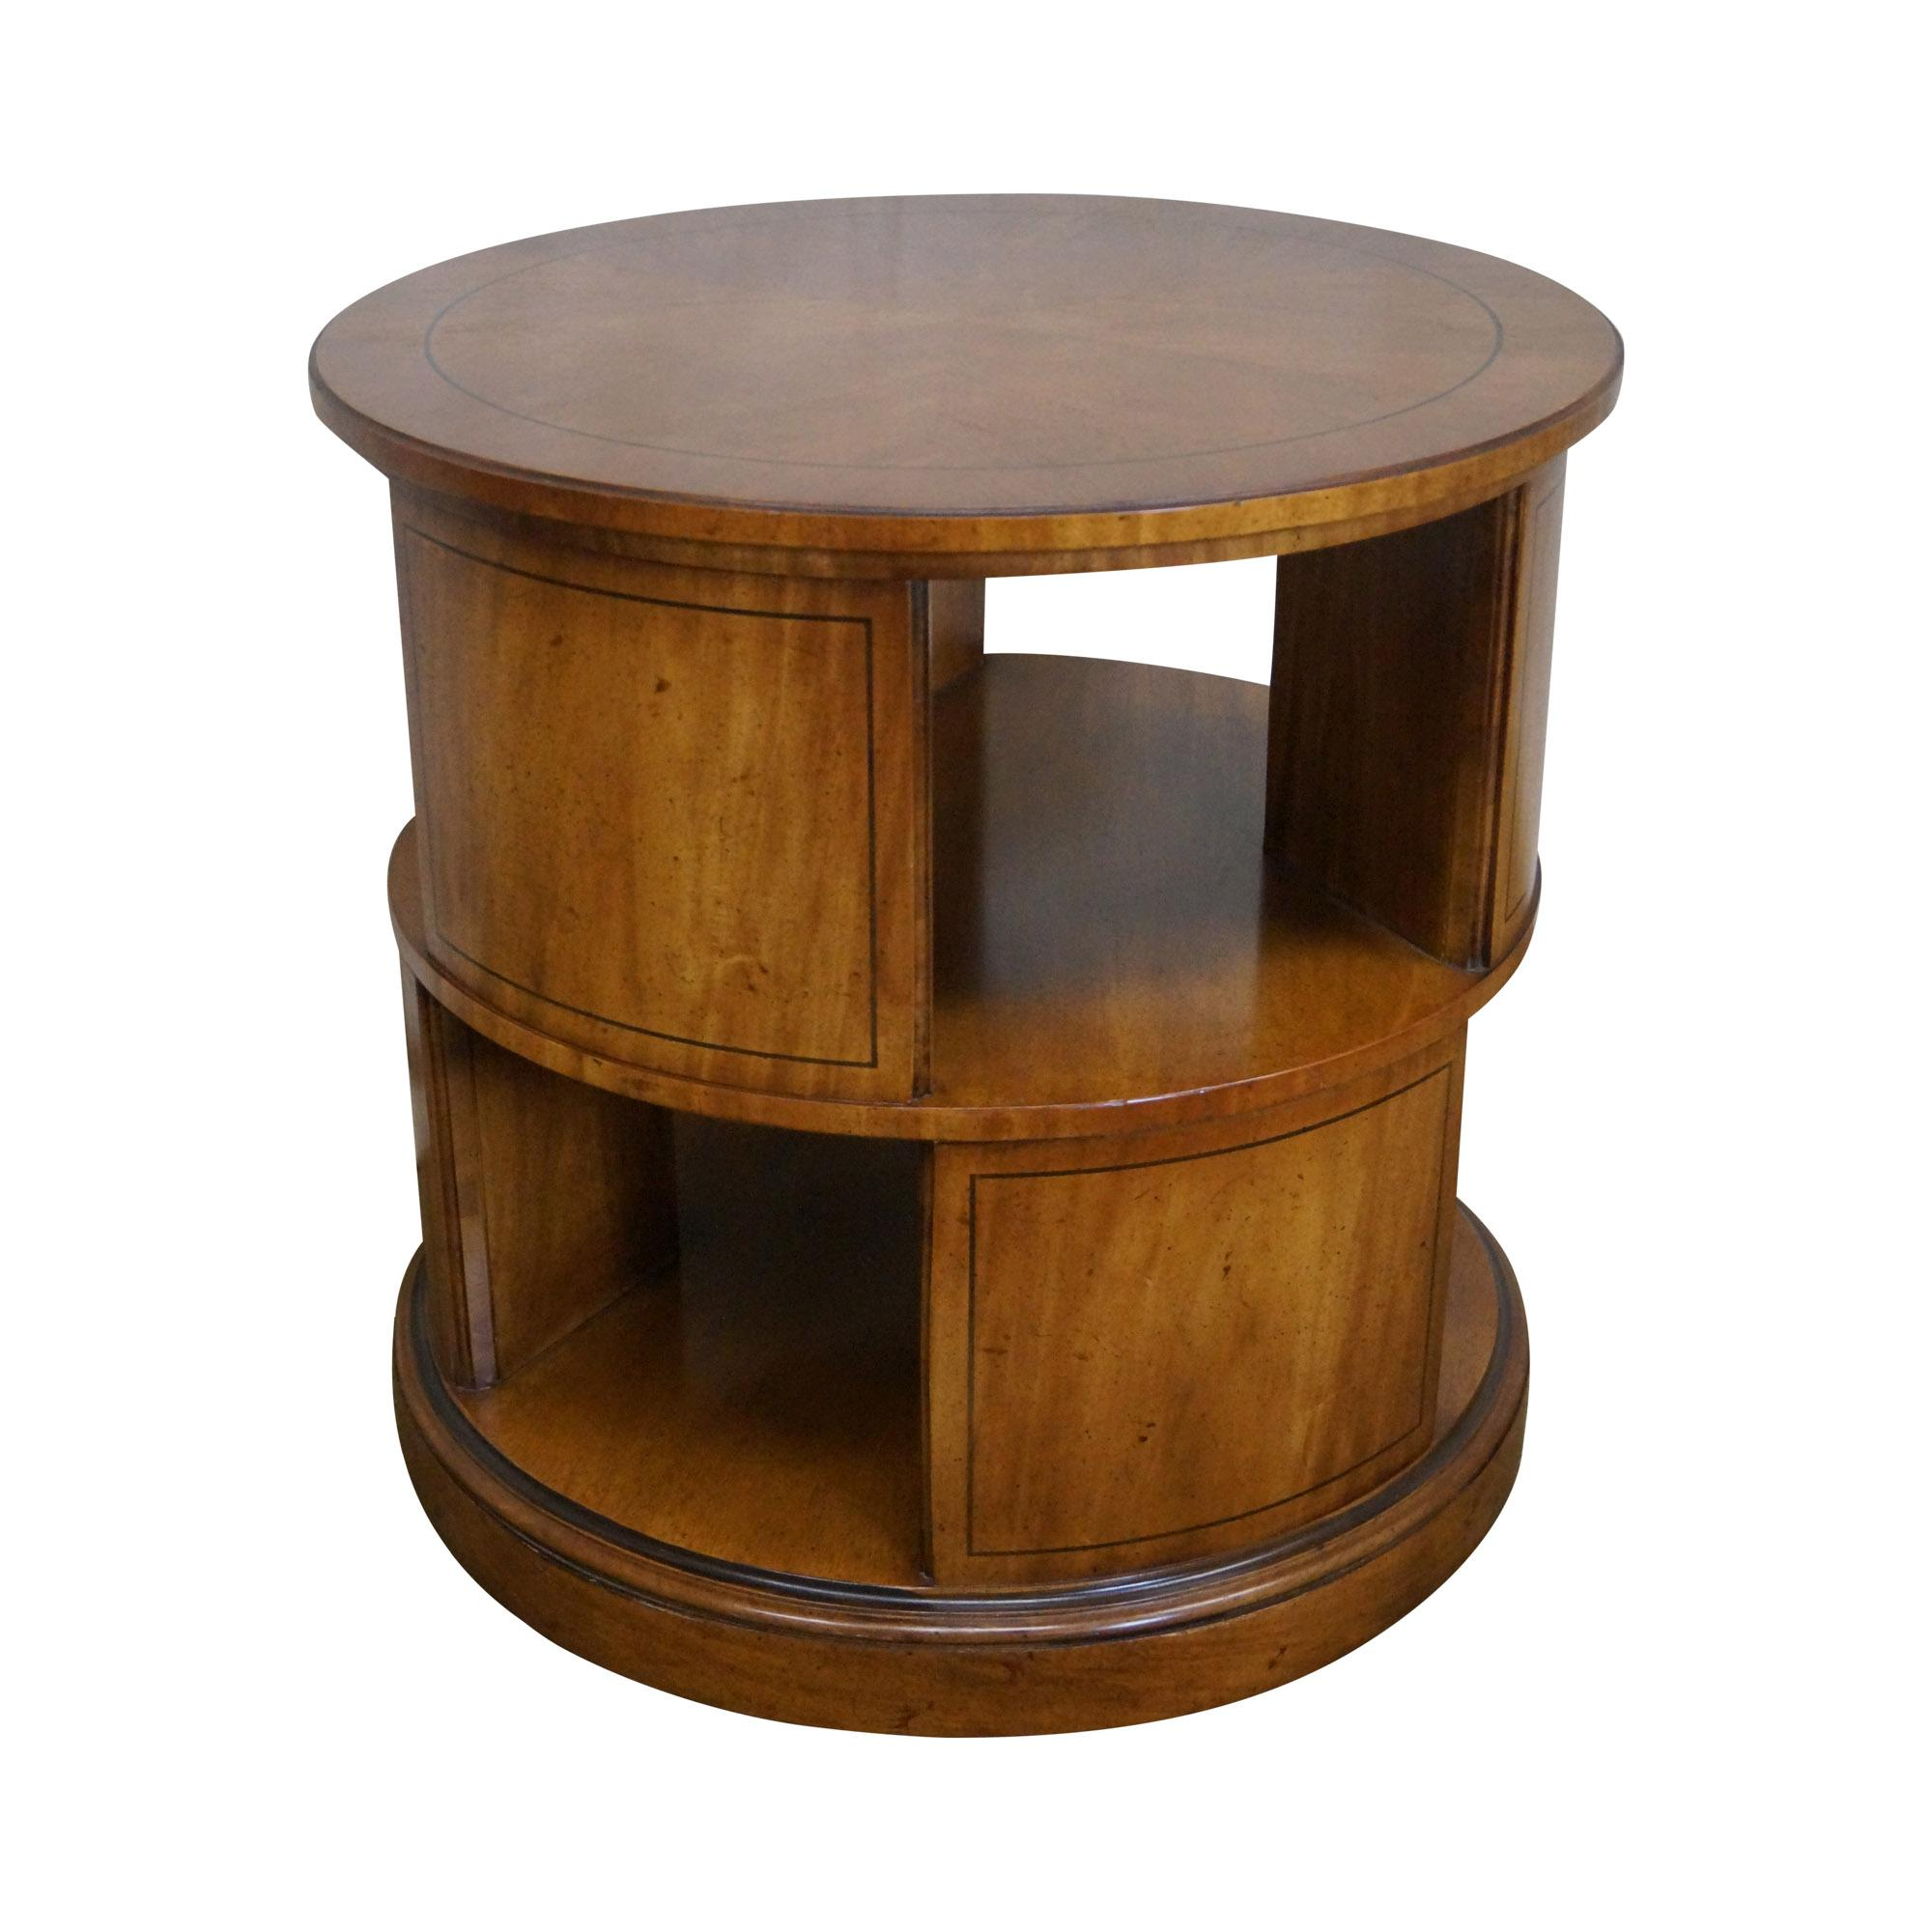 revolving chair with net victorian lounge henredon vintage round bookcase side table